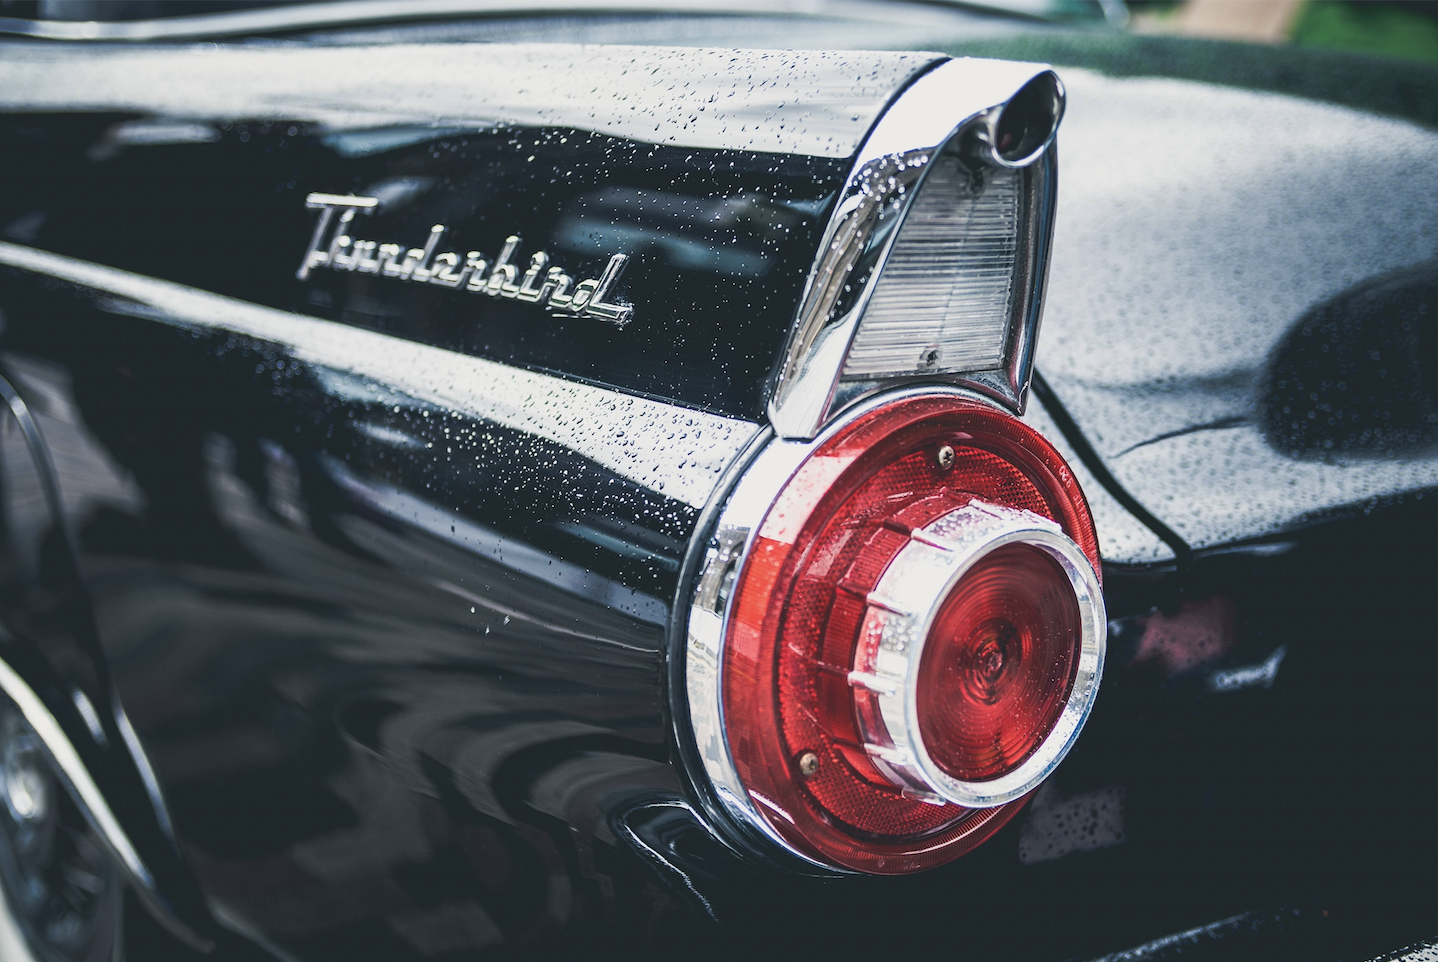 The 25th Annual Land of Lincoln Thunderbird Car Show